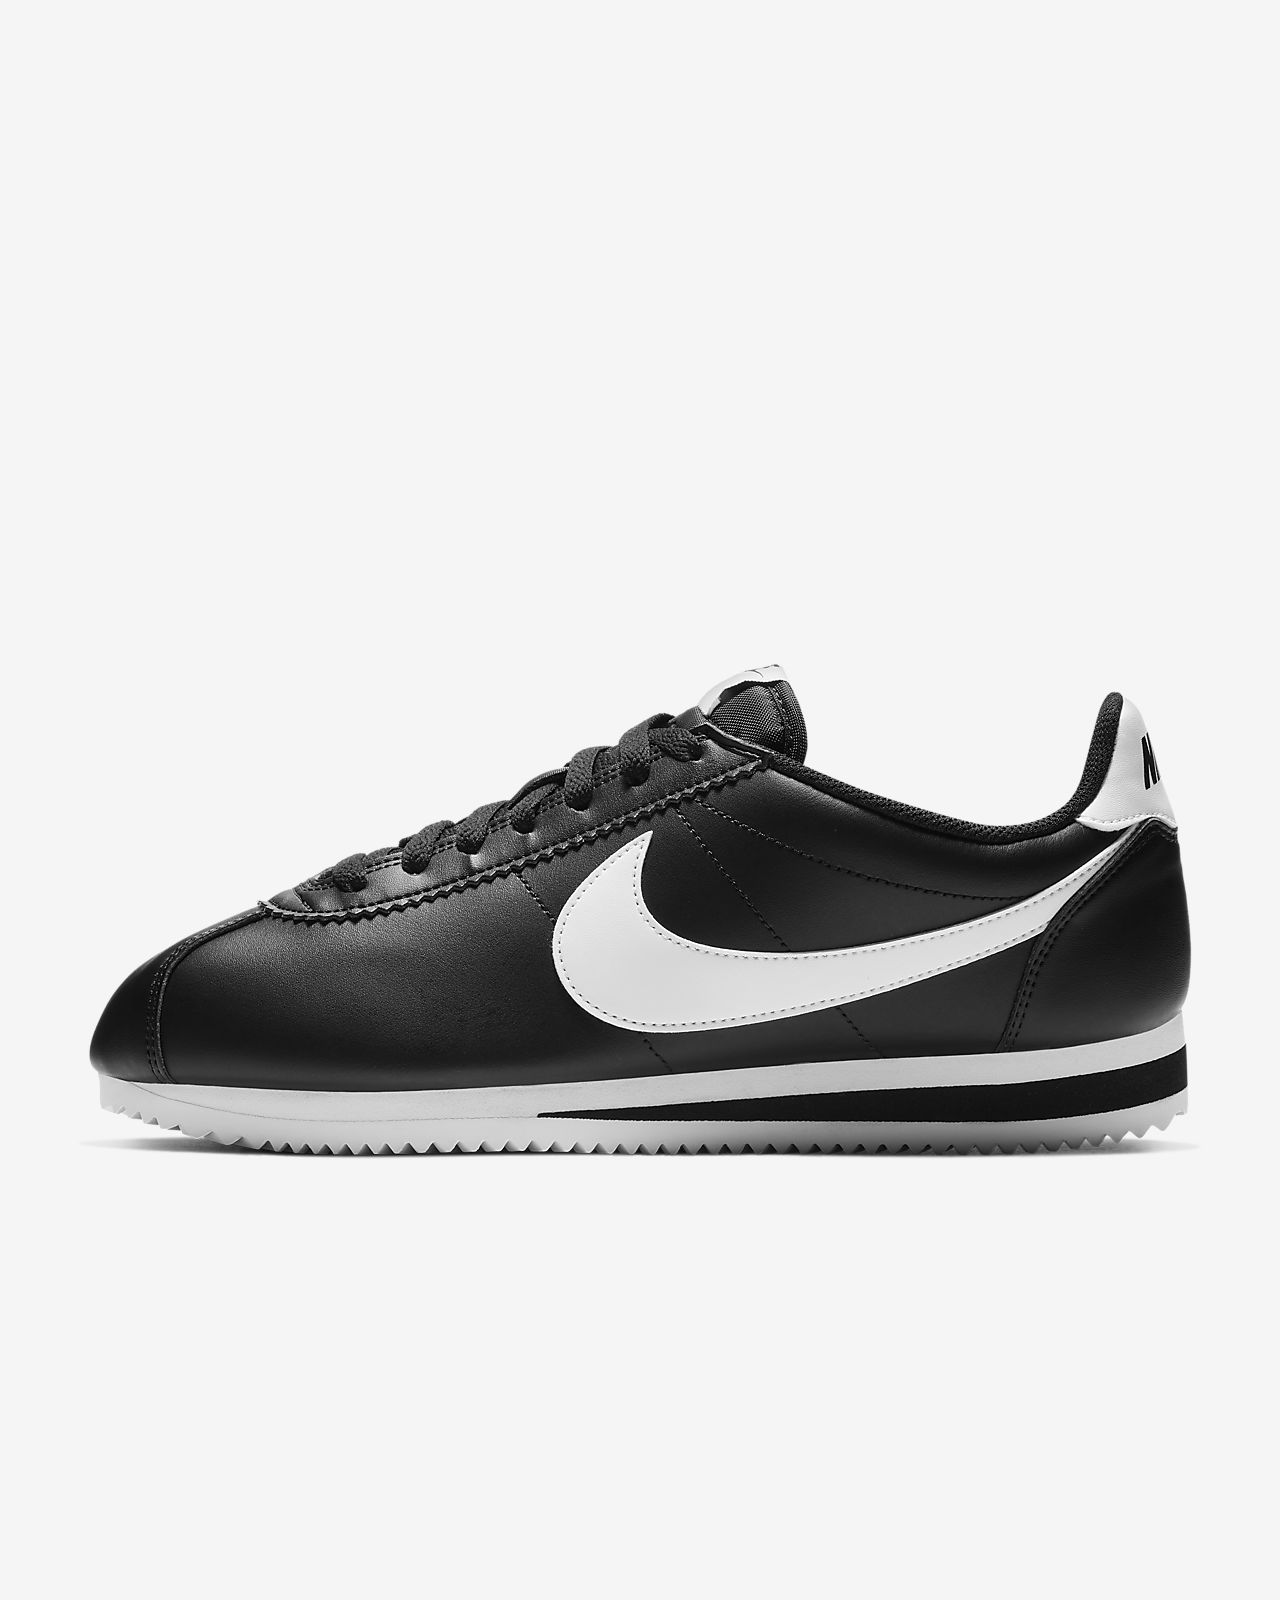 Nike Femme Chaussures Chaussures Chaussure Cortez Ultra Br